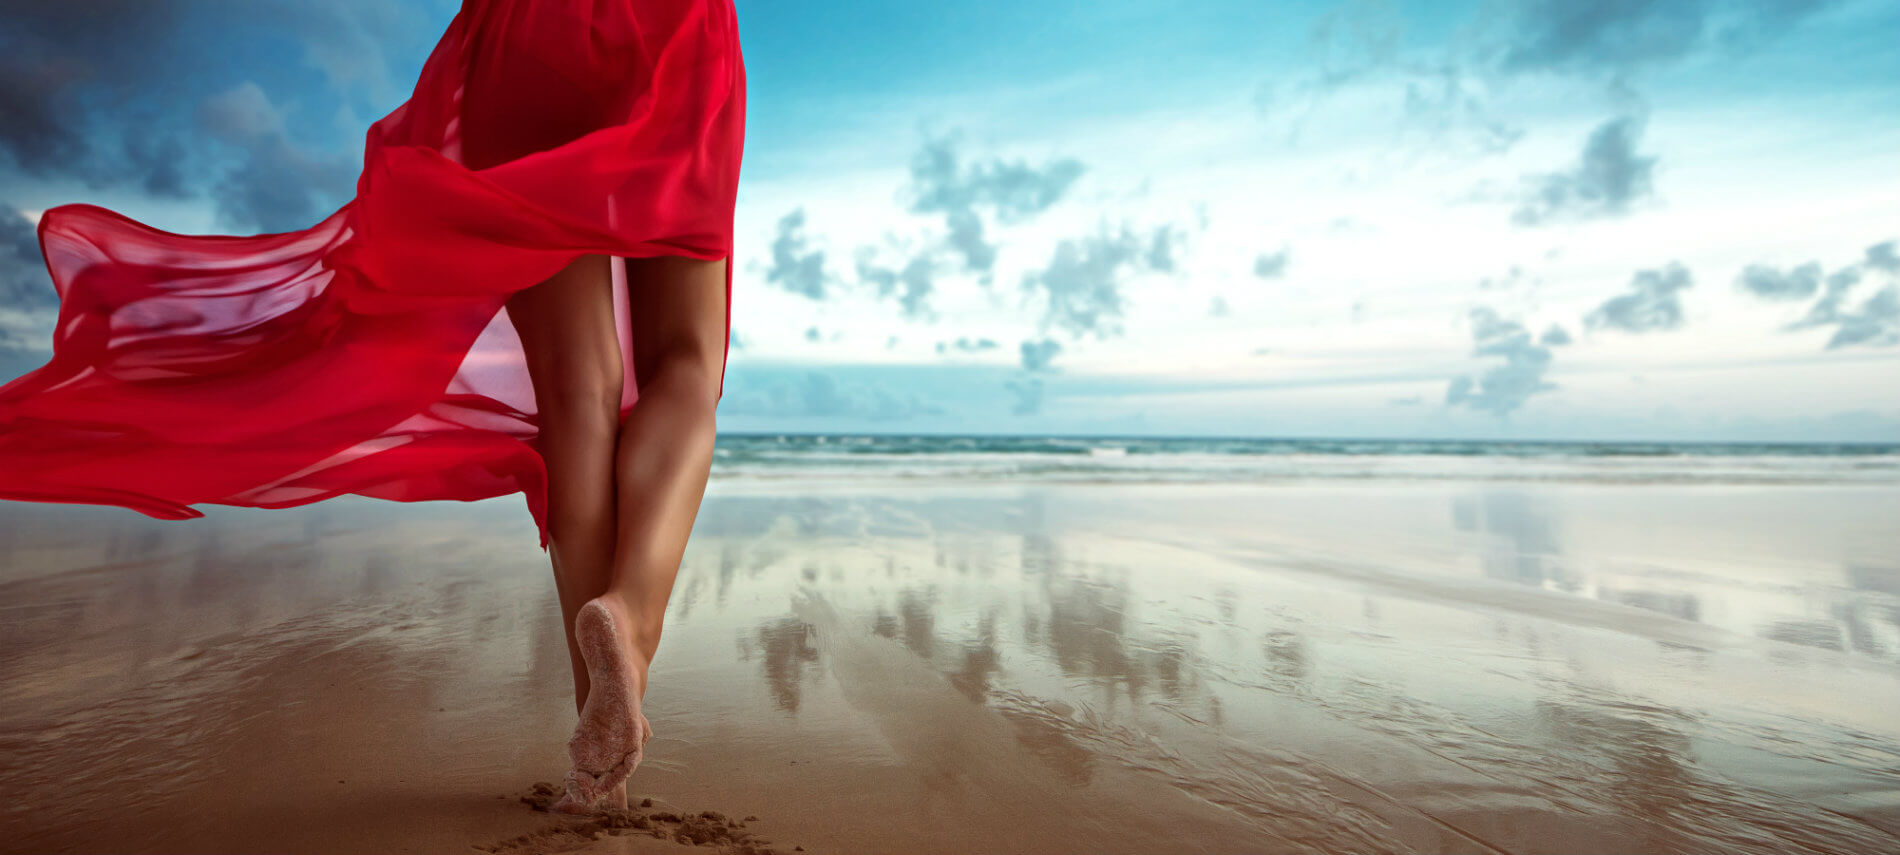 Rolling white clouds in the distance over a beach with a woman walking in a flowing red dress upon glistening bronze sand.